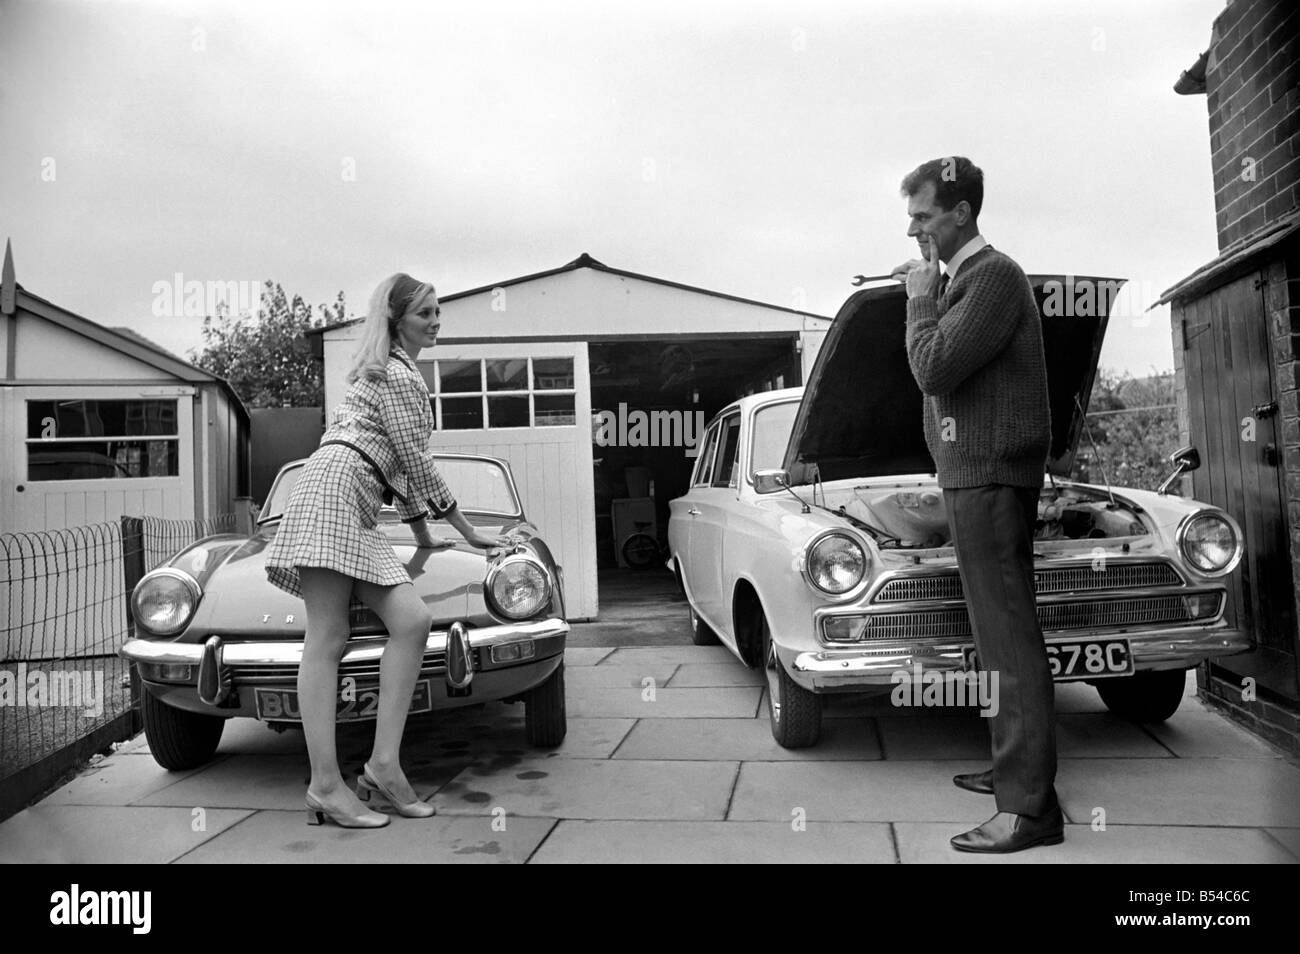 Models pose for a Lolly Dolly wives feature in Manchester. Man and woman and child in a suburban neighbourhood. Stock Photo